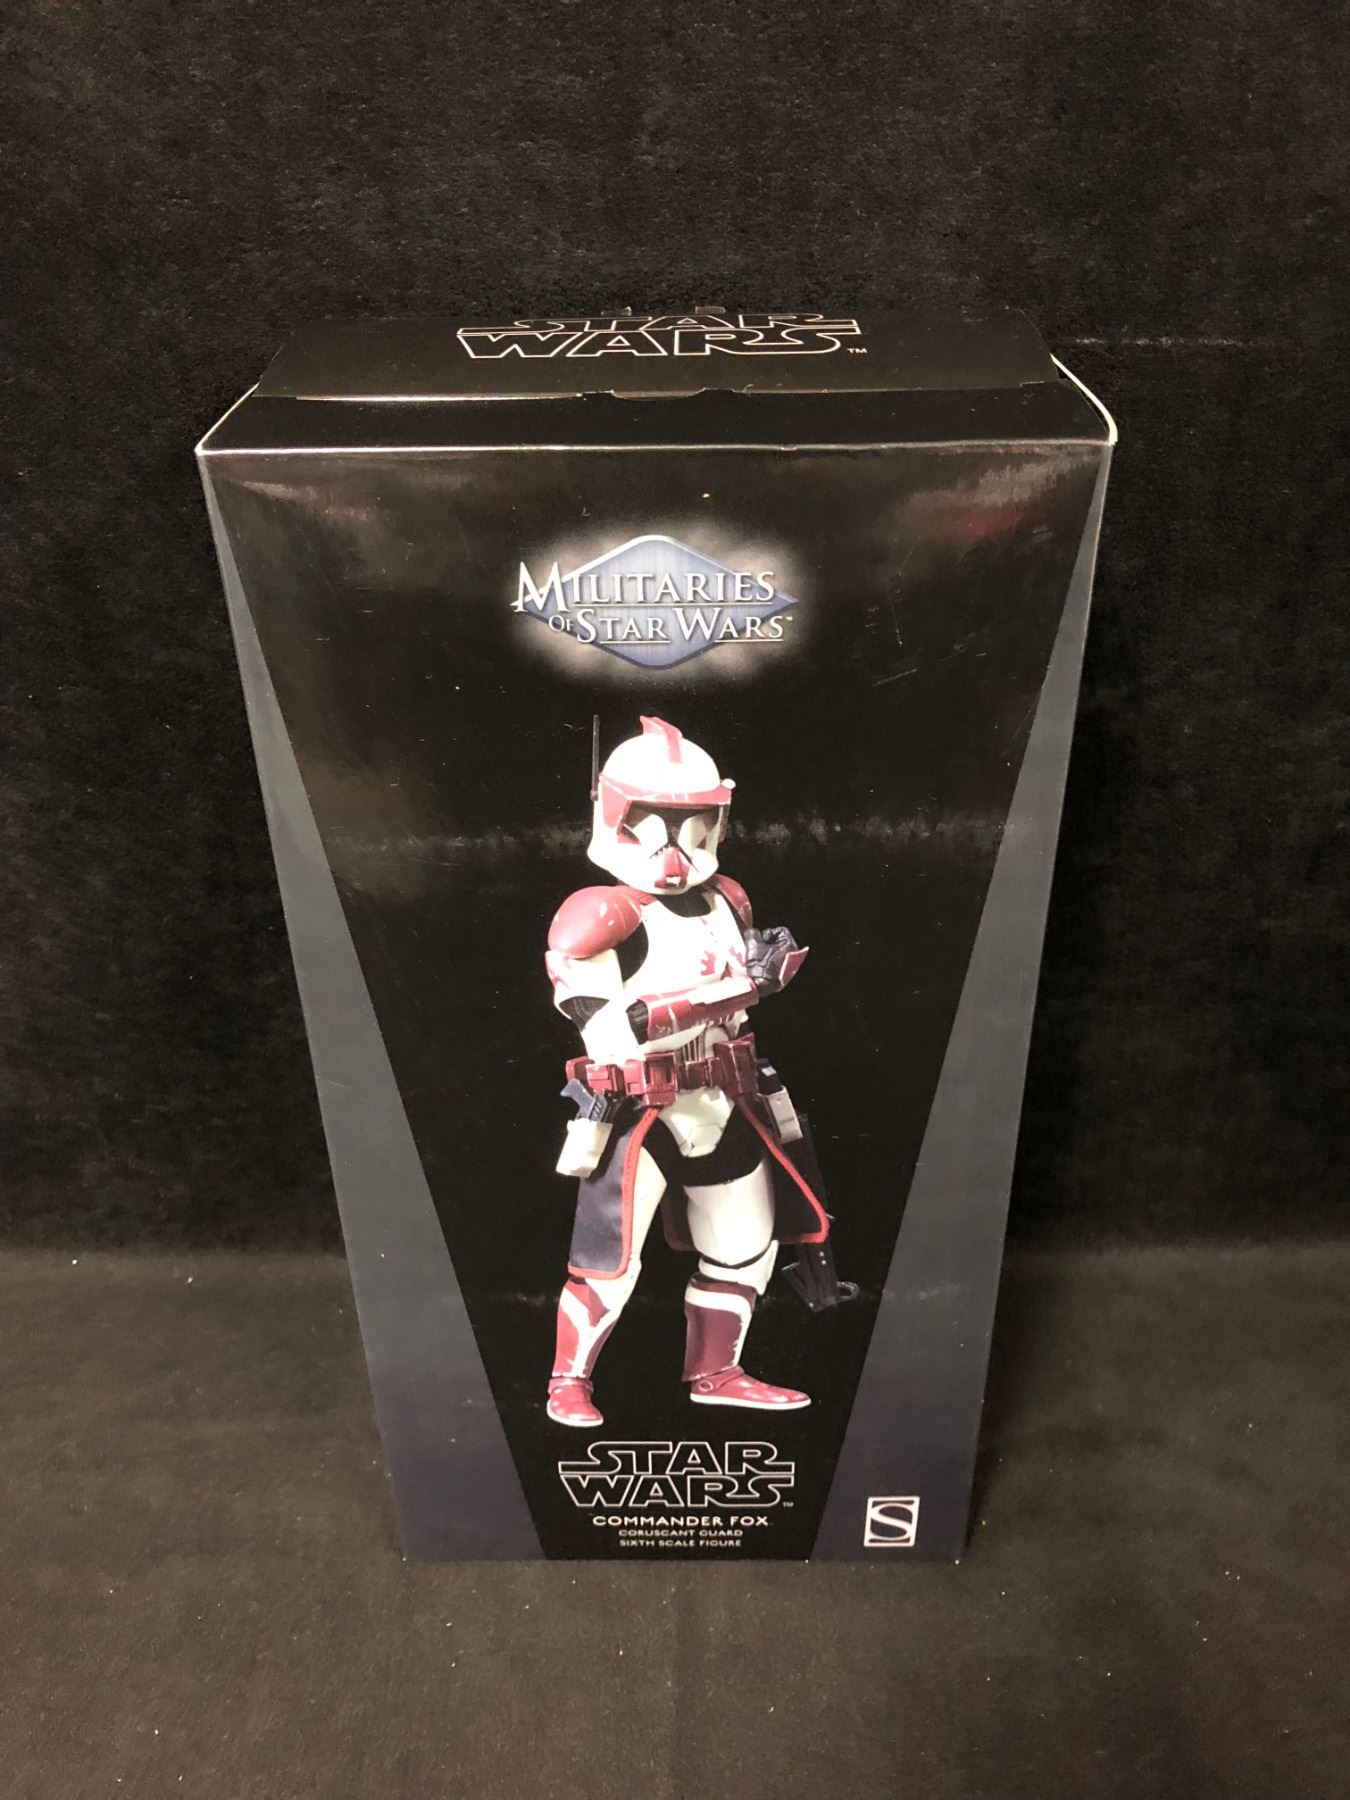 SIDESHOW COLLECTIBLES MILITARIES OF STAR WARS COMMANDER FOX CORUSCANT GUARD  1:6 SCALE